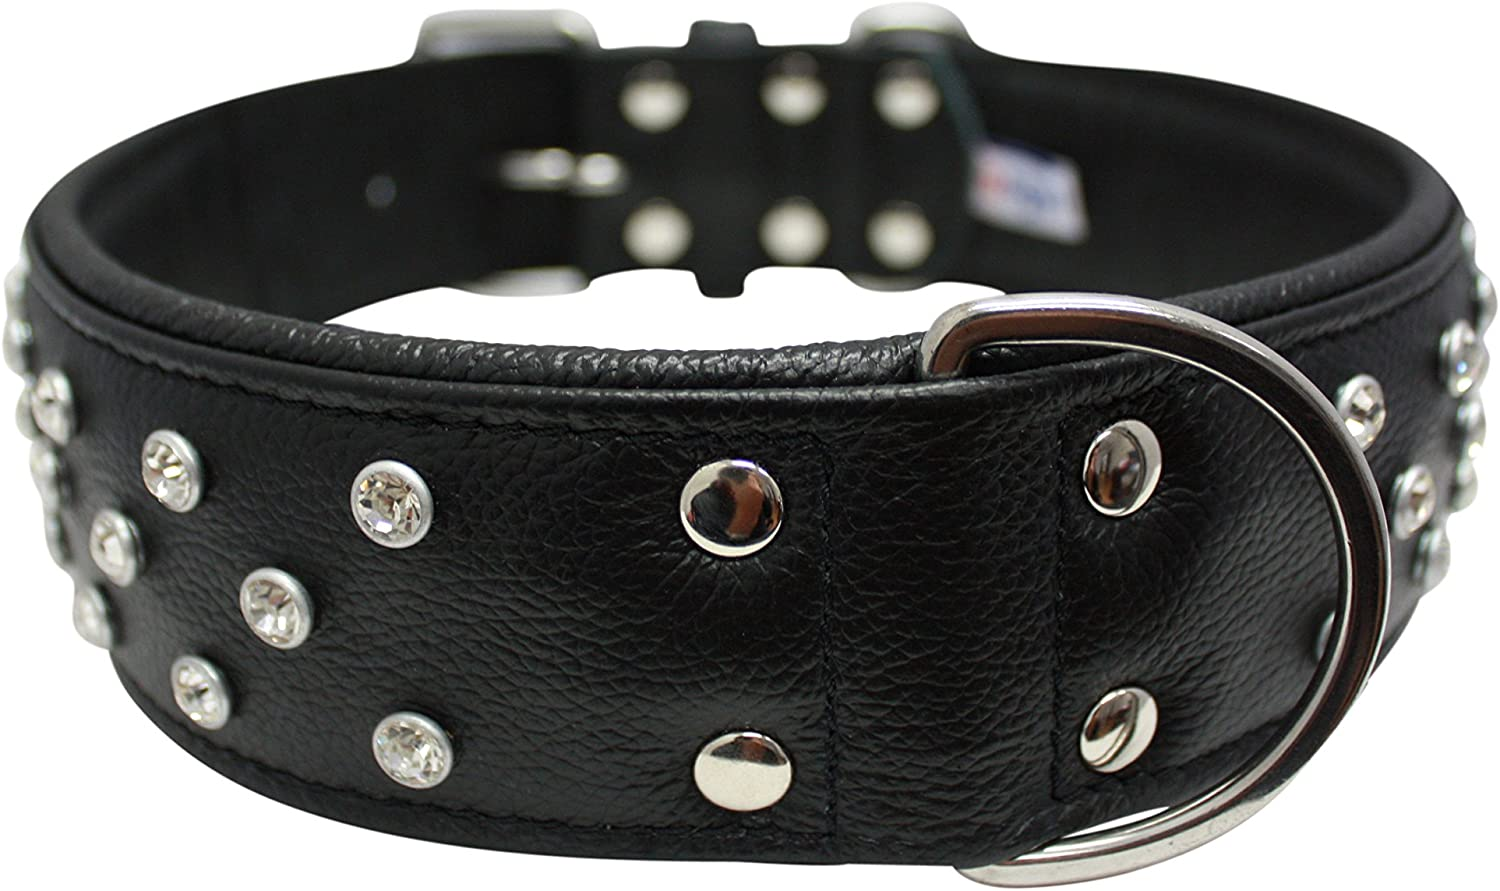 Rhinestones Bling Leather Dog Collar, Wide, Padded, DoublePly, Riveted Settings, 30  x 2 , Black. Stainless Steel (Athens) For Neck Size  23 27